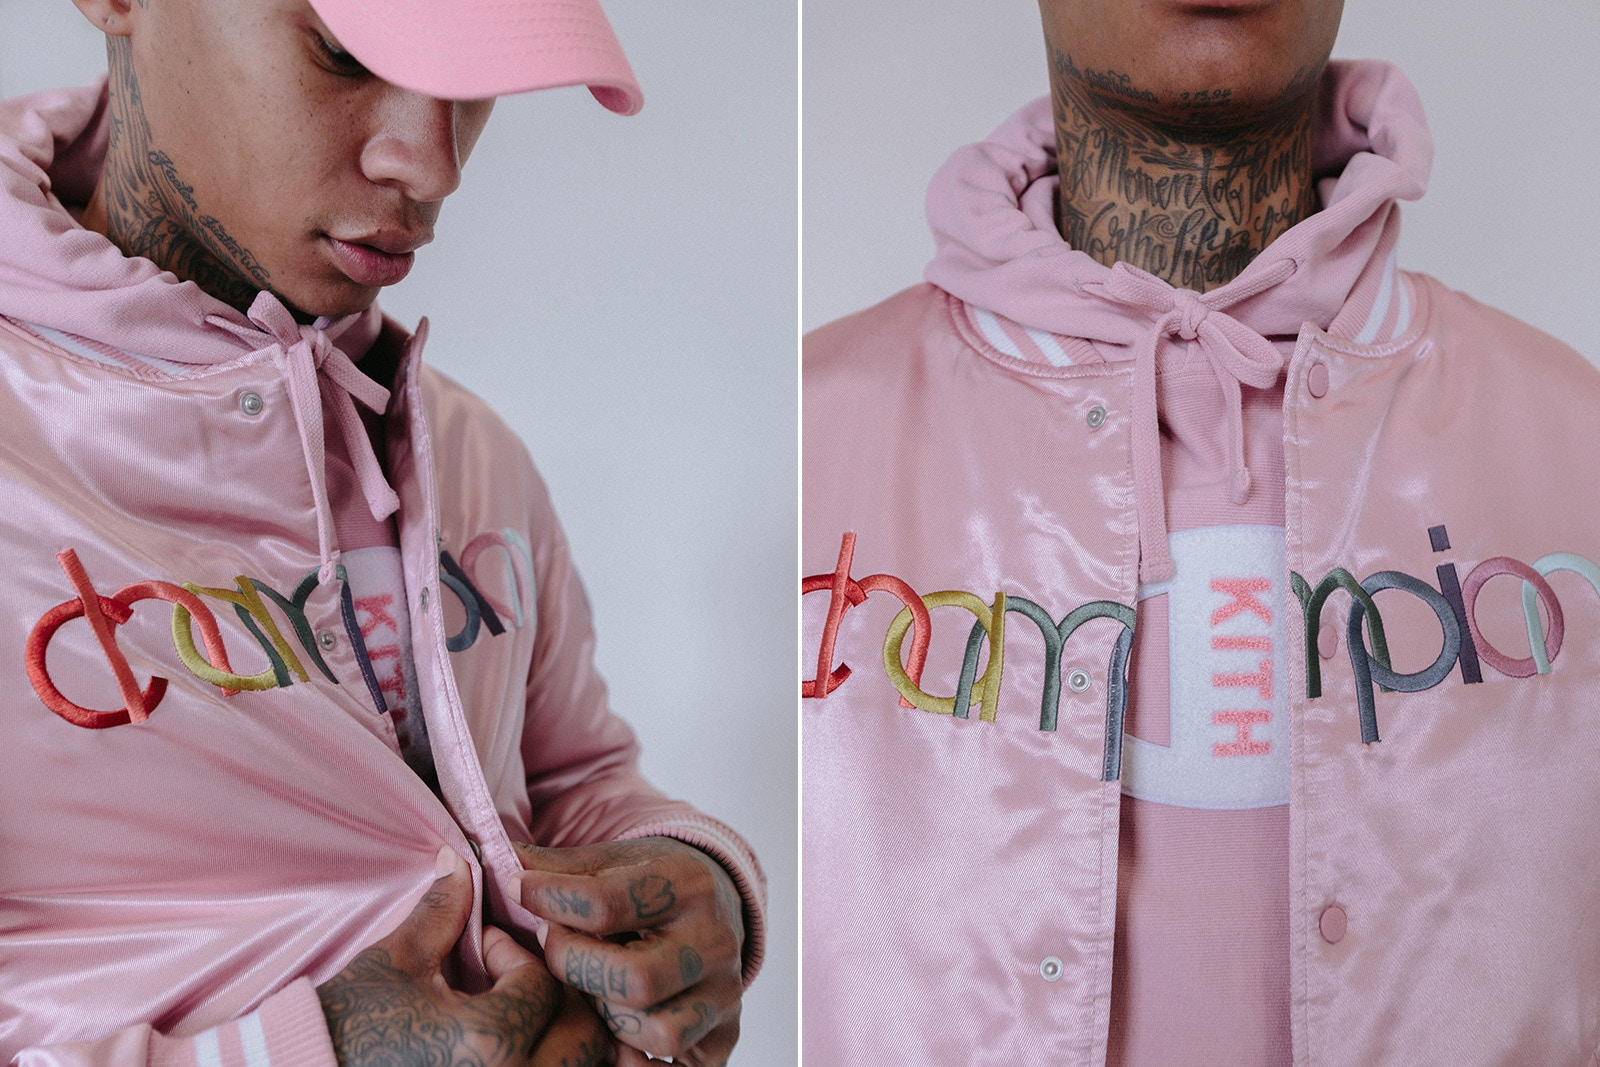 KITH rielabora il logo di Champion per una nuova capsule collection | Collater.al 13